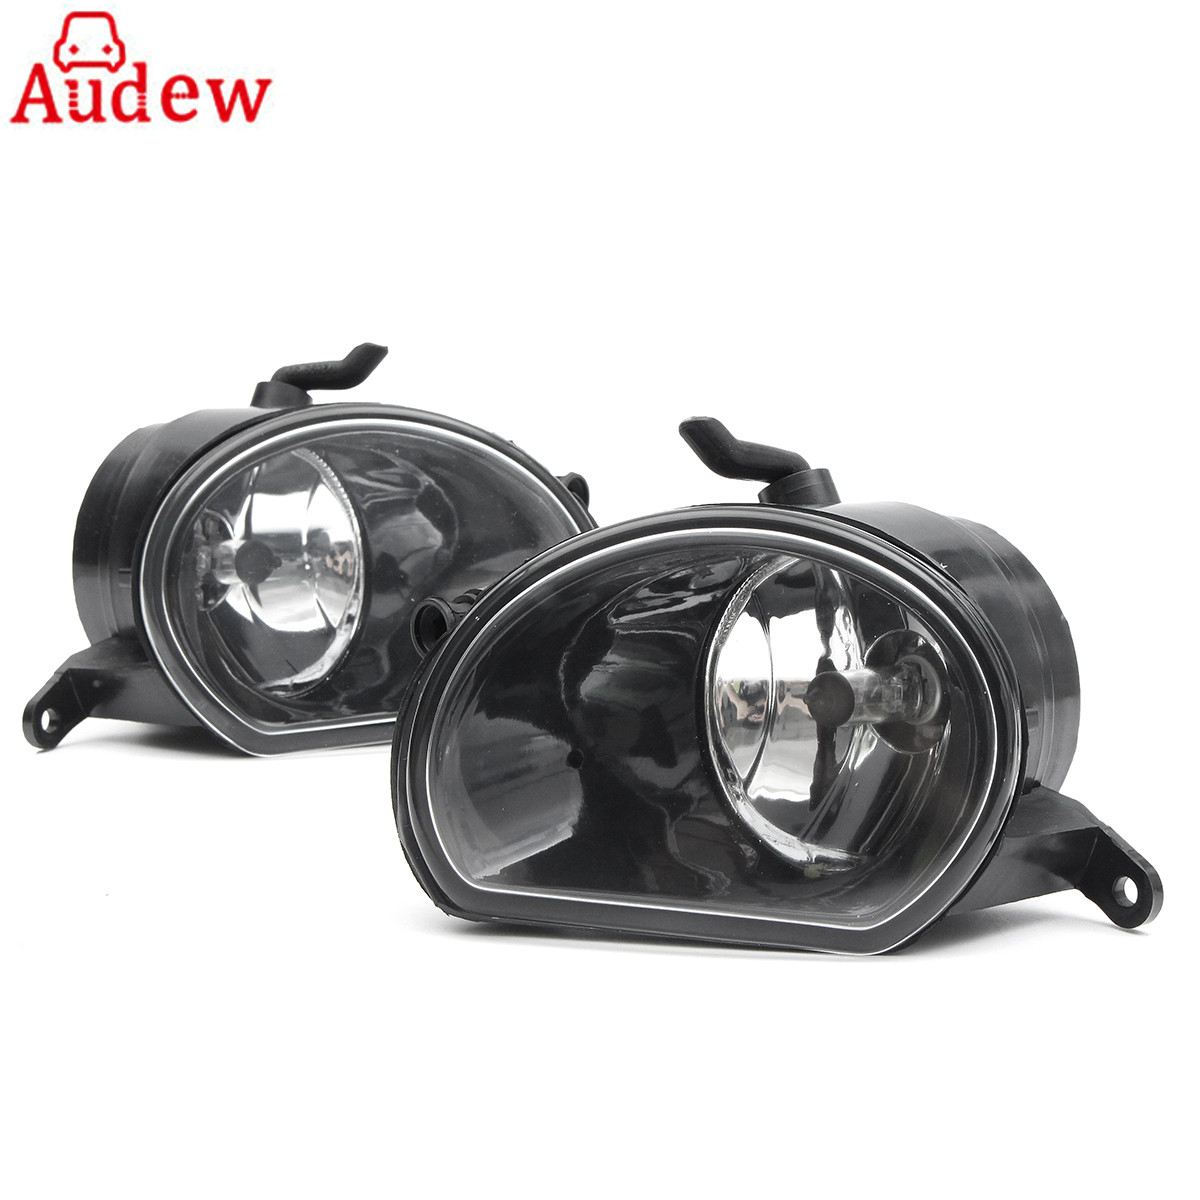 1 Pair Car Front Bumper LED H11 Fog Light Lamps Headlight Left&Right For AUDI Q7 2010 2011 2012 2013 2014 2015 2 pcs set car styling front bumper light fog lamps for toyota venza 2009 10 11 12 13 14 81210 06052 left right